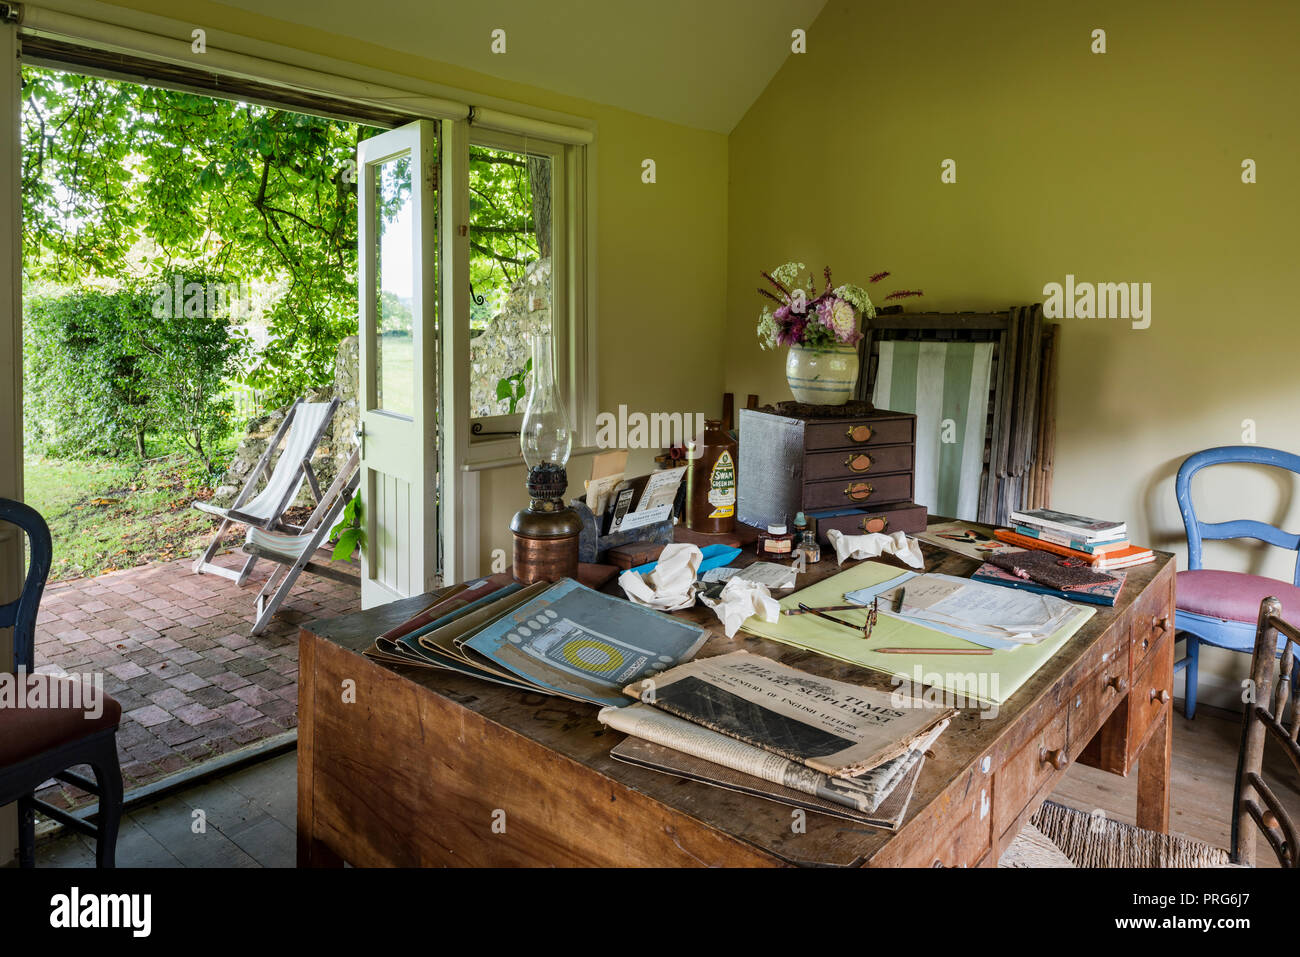 Newspaper on desk in summerhouse, once home to Virgina Wolfe - Stock Image